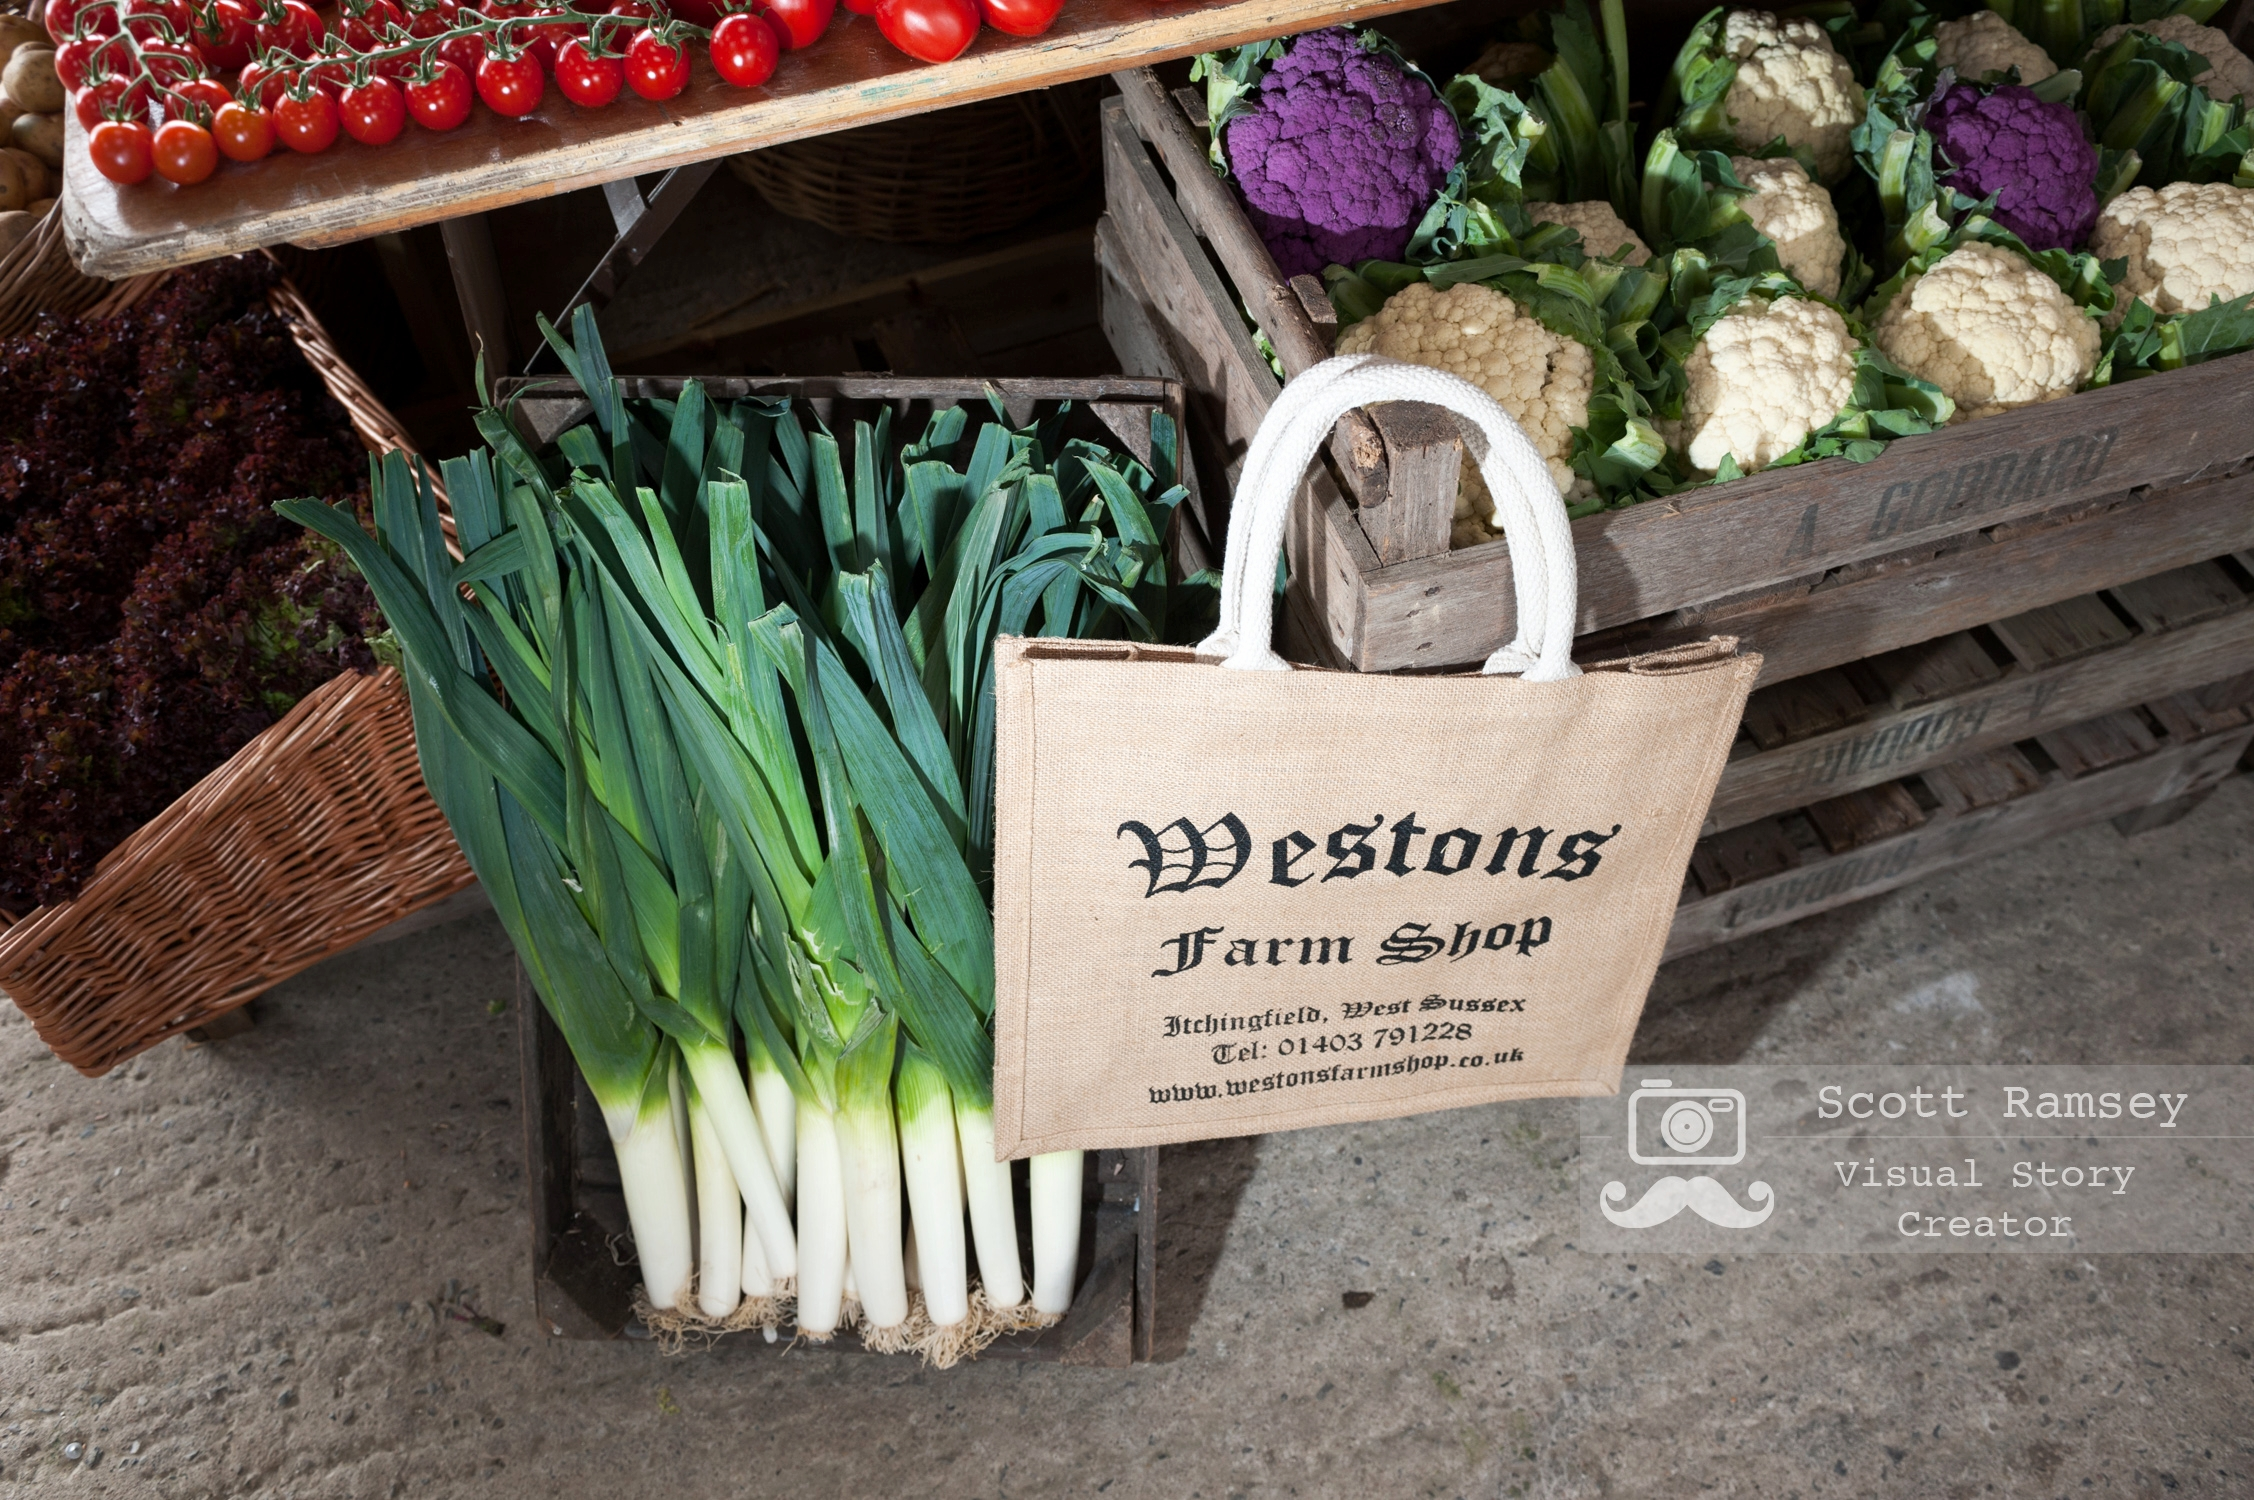 Fresh farm produce from a West Sussex farm on display at the 2017 South Of England Show. Photo © Scott Ramsey